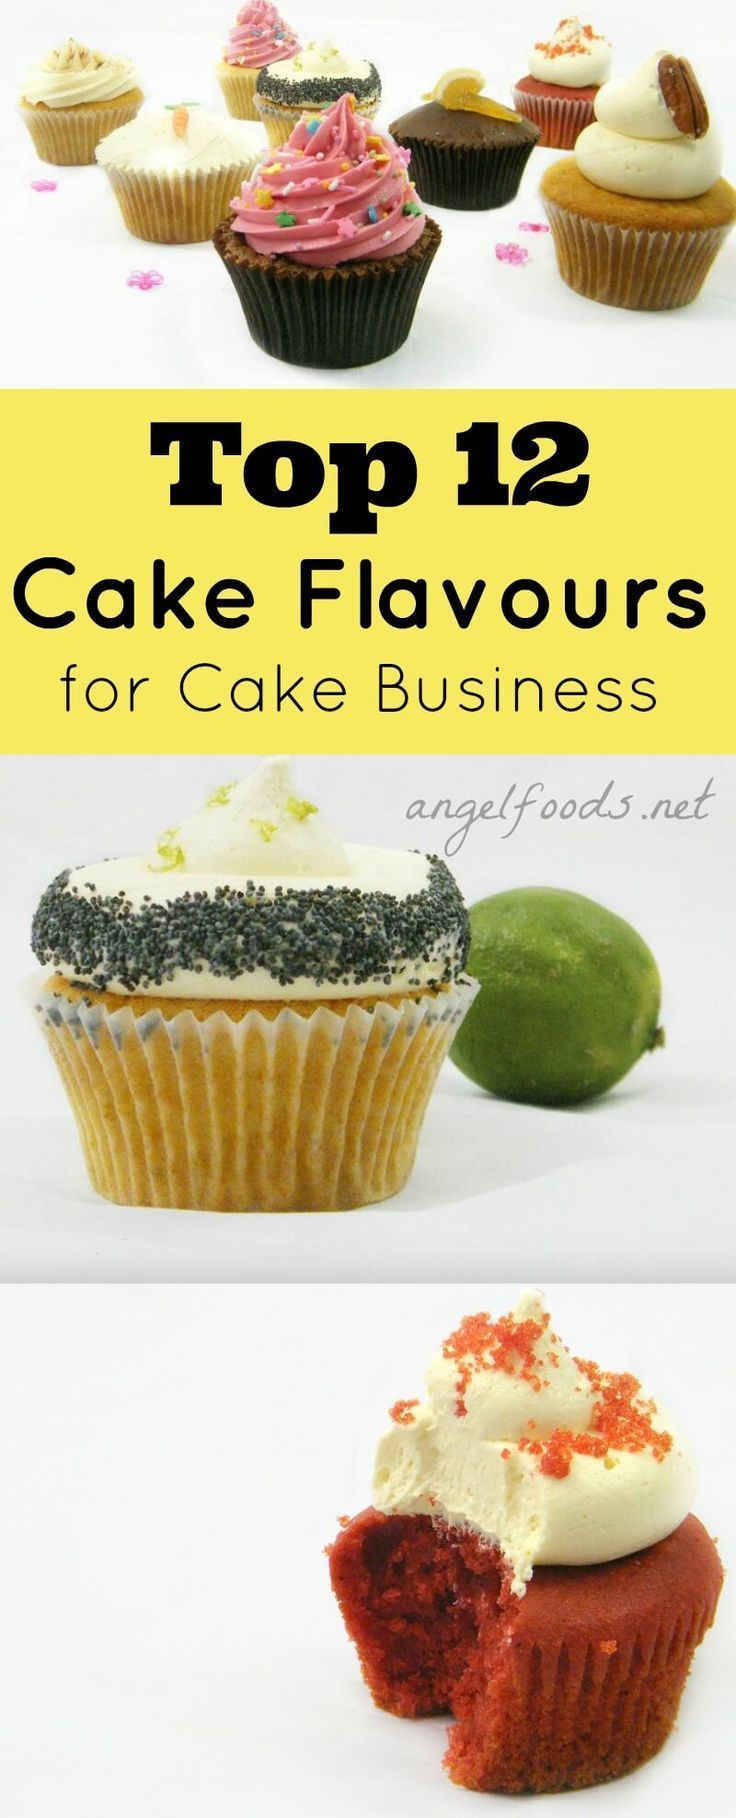 12 Most Popular Cake Flavours What Are The Best Selling